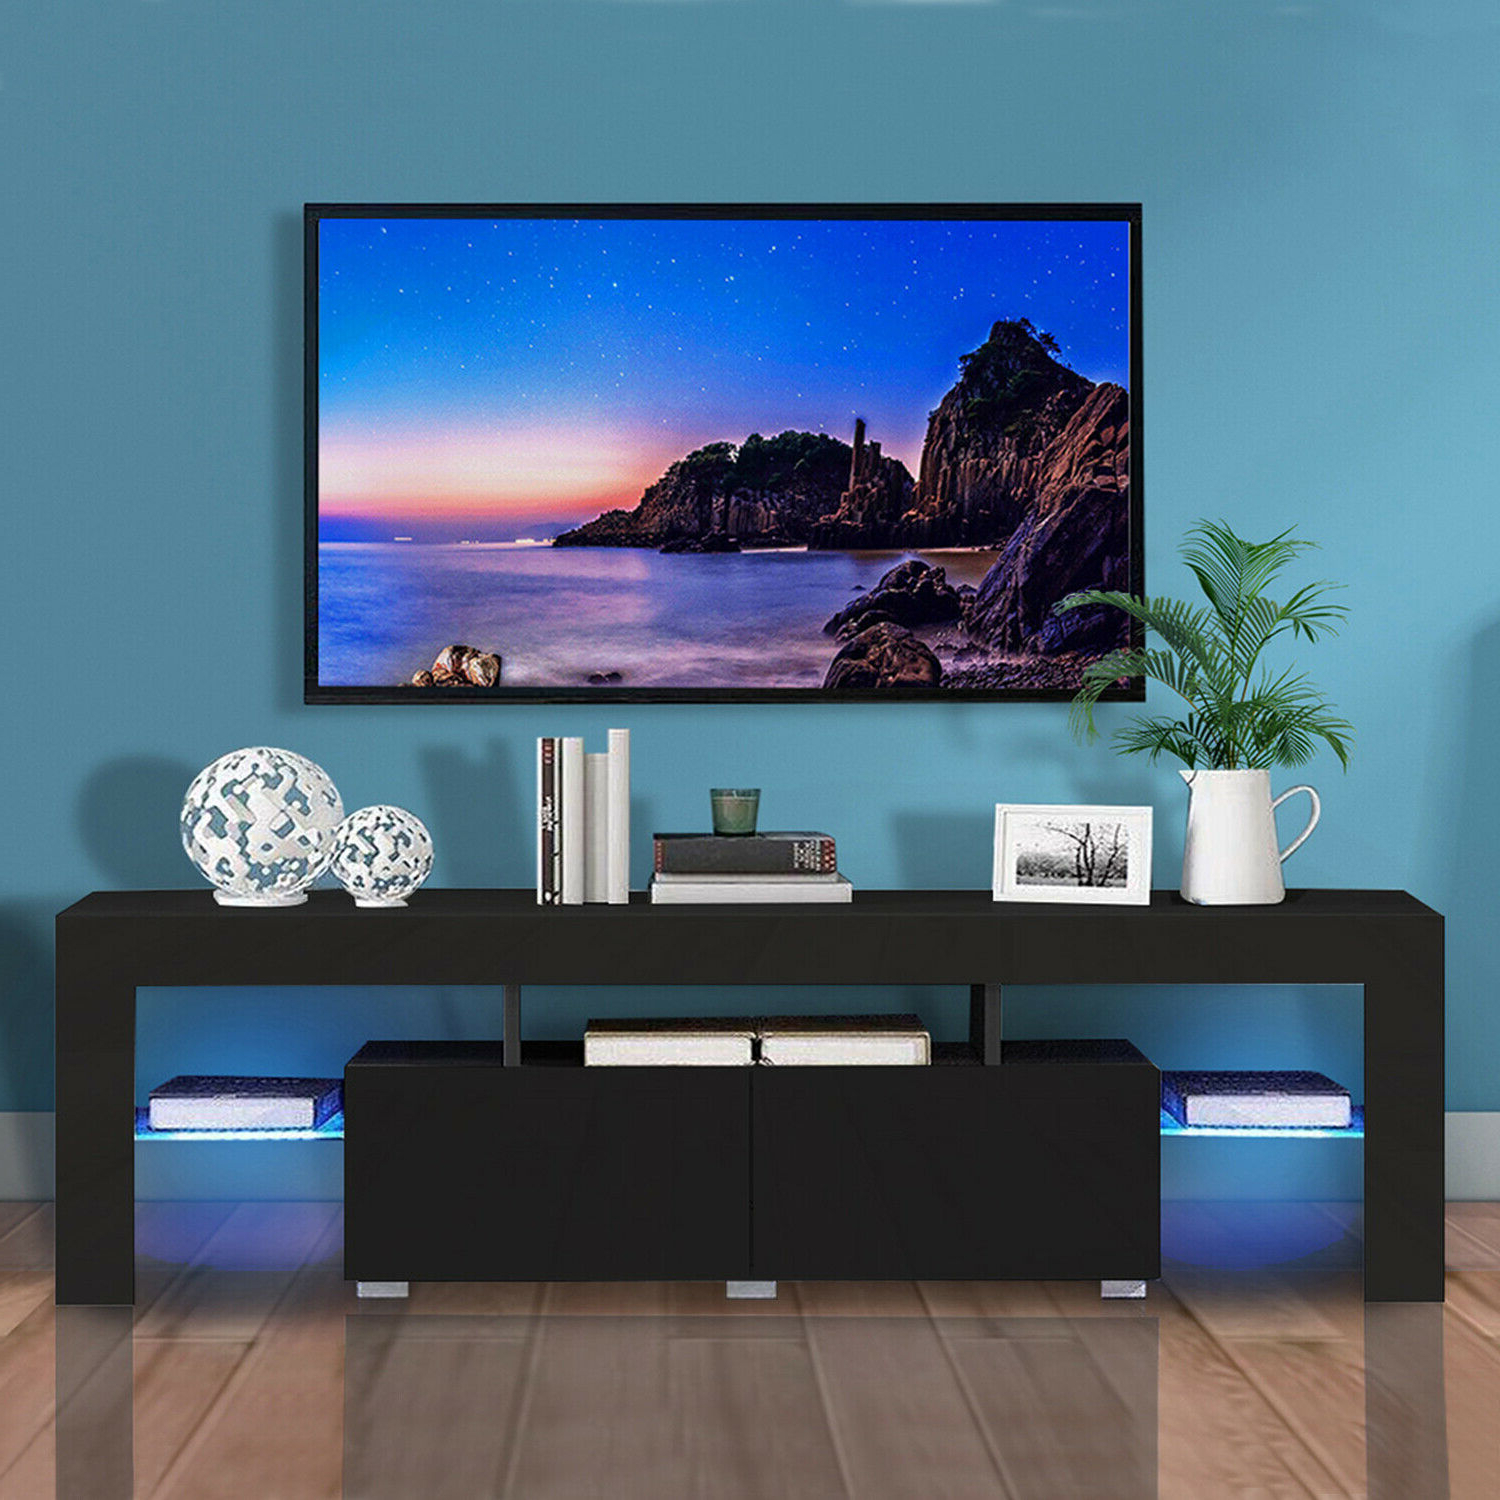 Newest Ktaxon Modern High Gloss Tv Stands With Led Drawer And Shelves In Modern Led Tv Stand Cabinet Unit Media Storage Console (View 7 of 10)